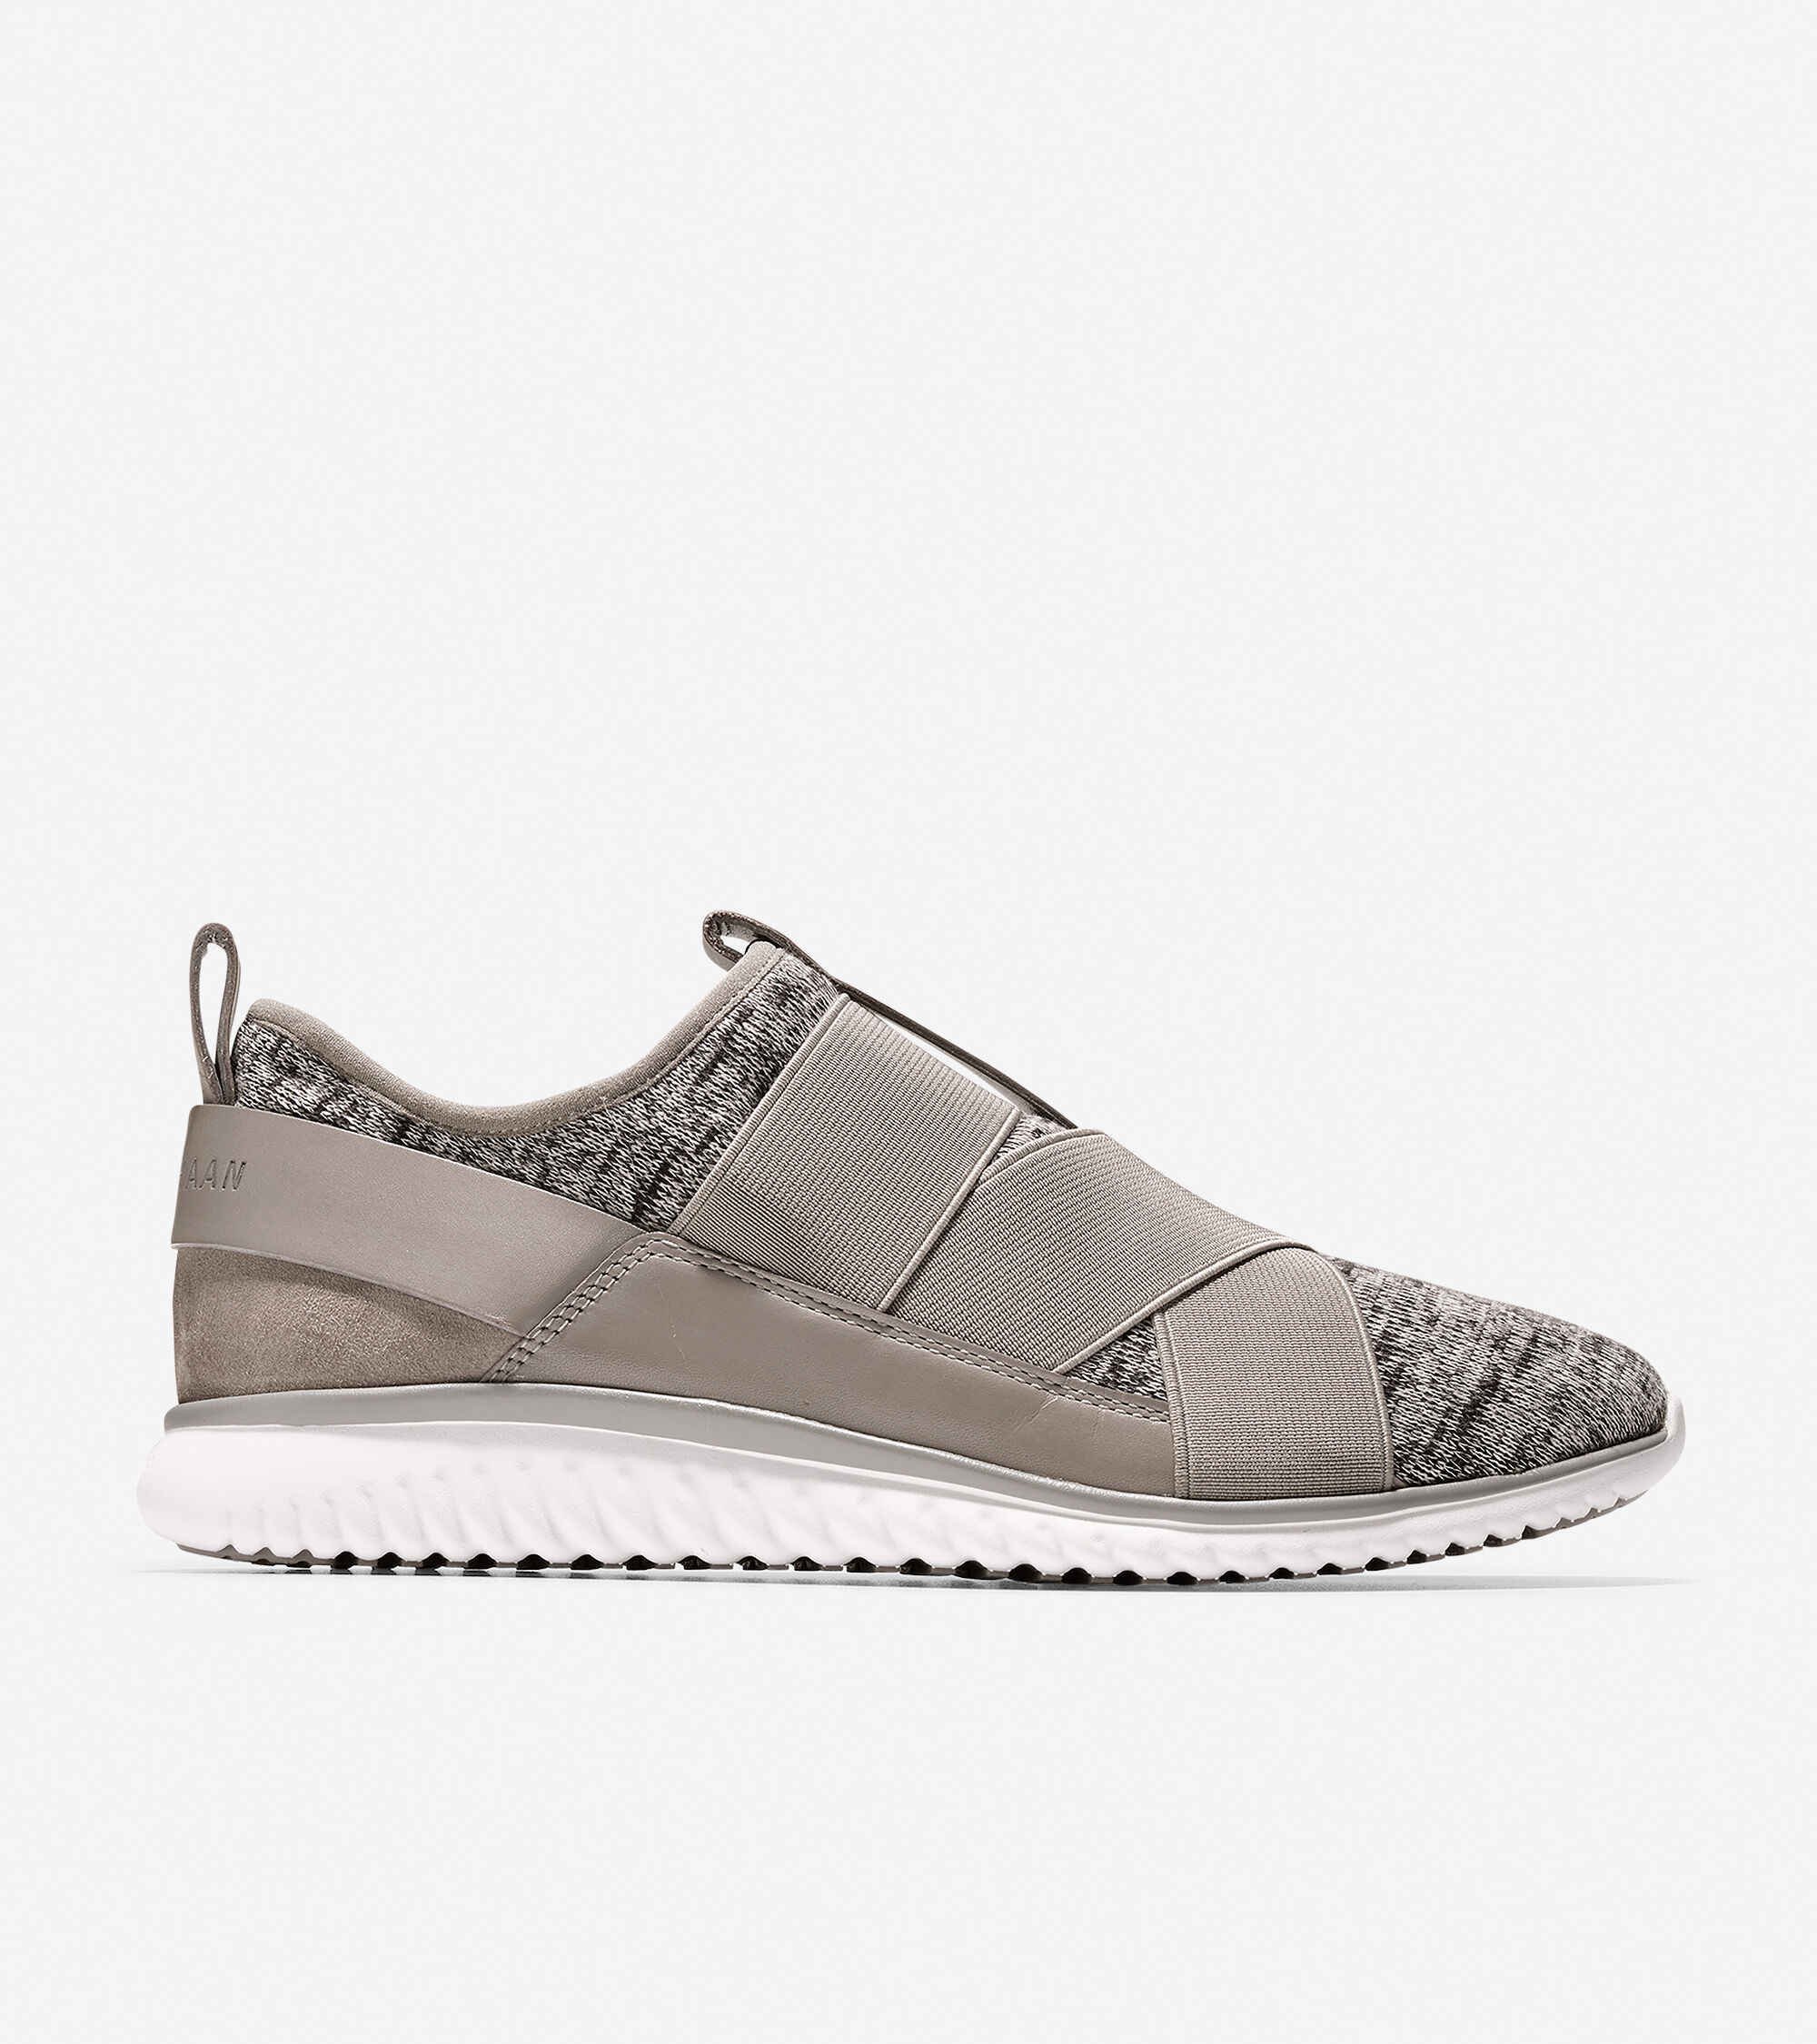 Knit uppers with smooth leather and suede detail, with gore detail. Fully lined. Padded sock lining. Full rubber outsole with GRANDFØAM.